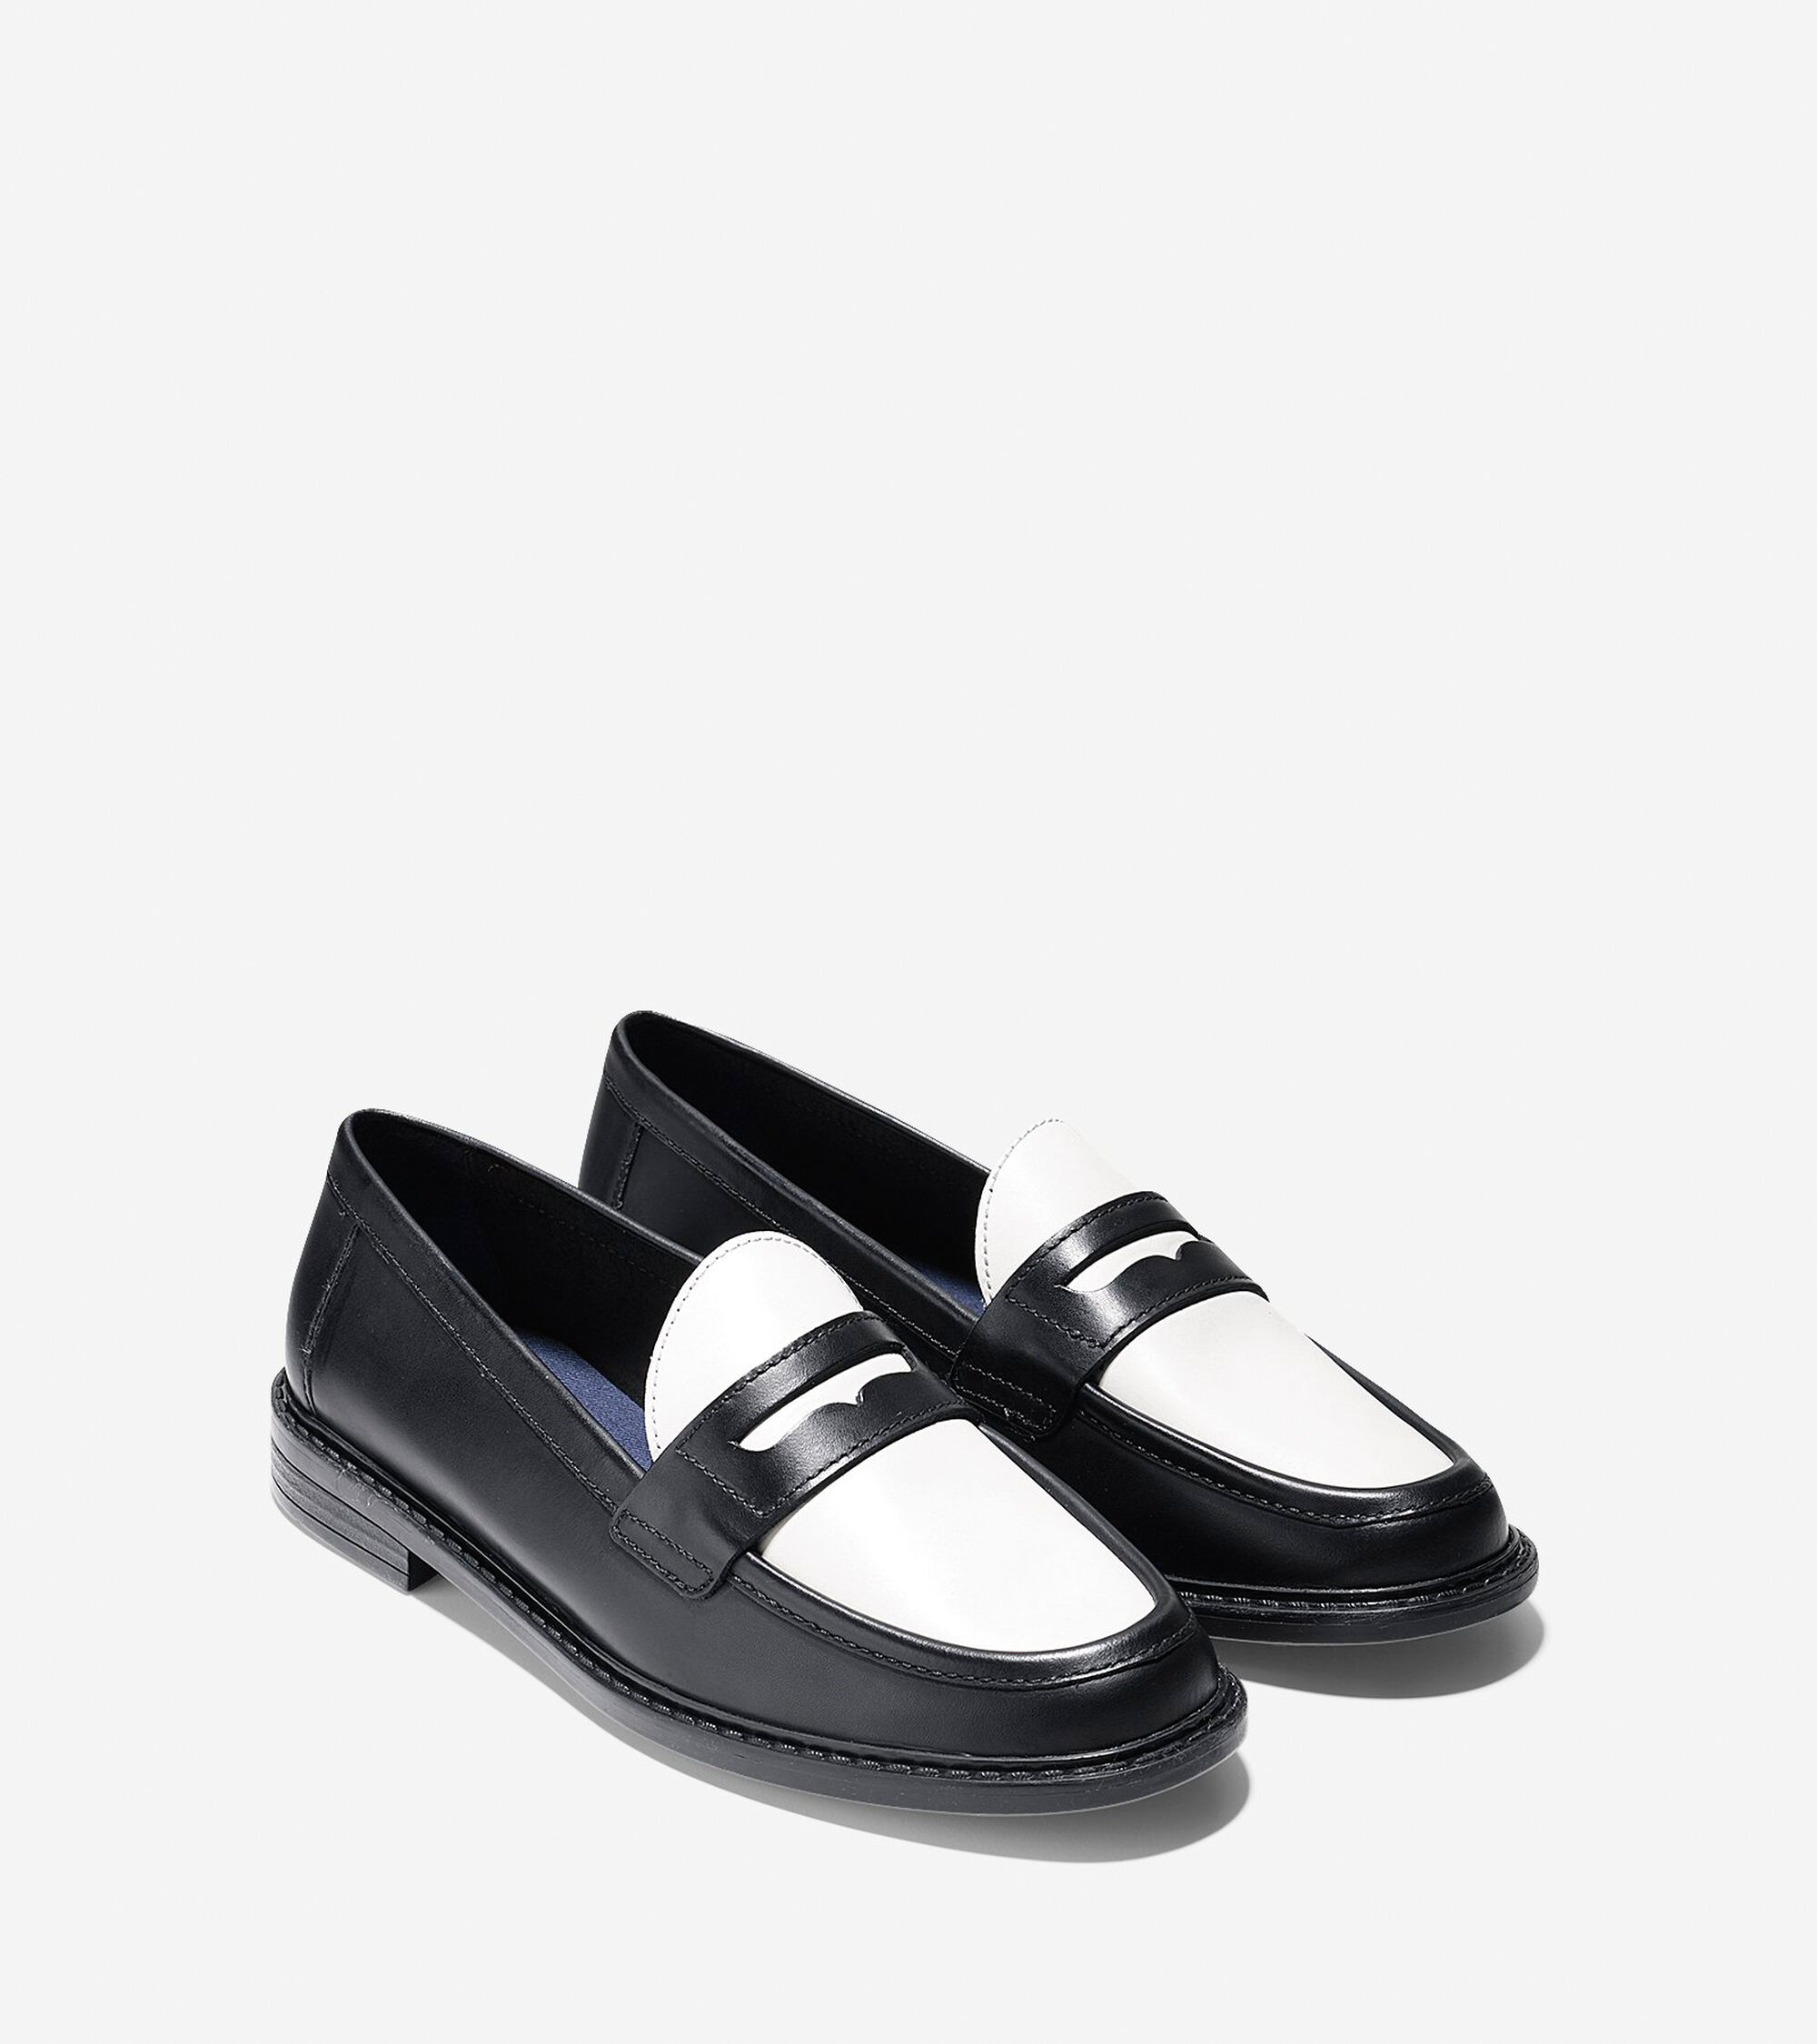 Buy low price, high quality black and white loafers womens with worldwide shipping on lidarwindtechnolog.ga